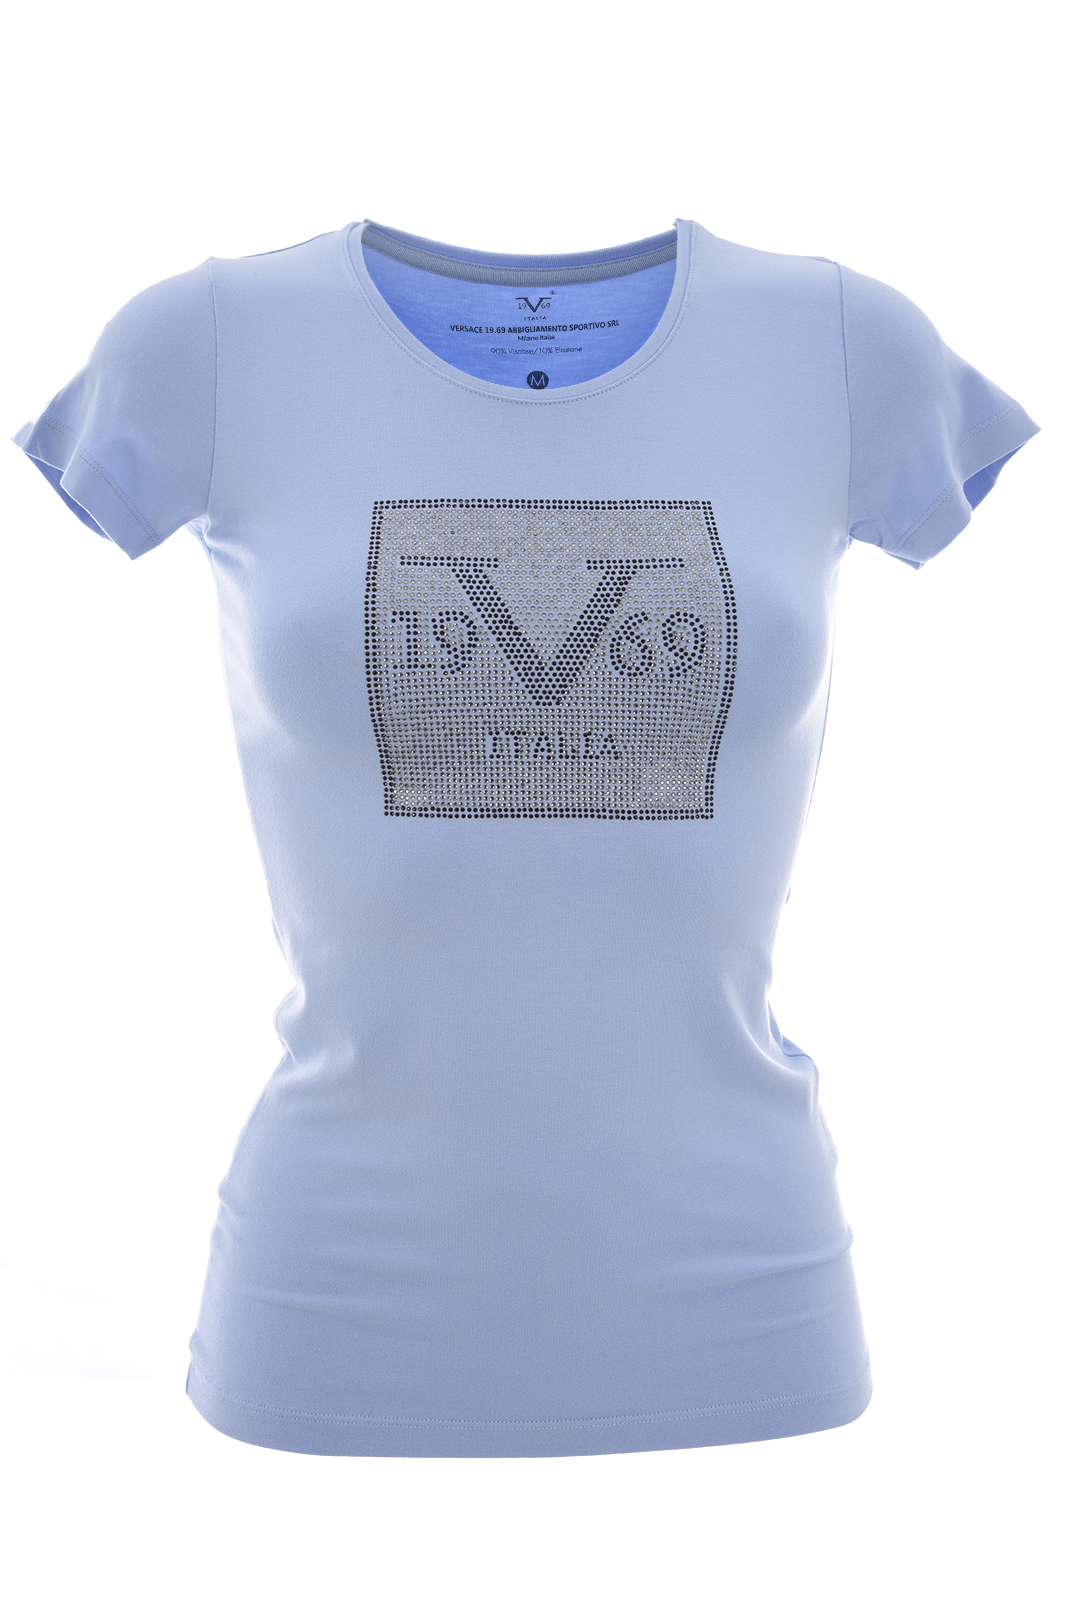 Tee shirt  19V69 by Versace 1969 CUBO SERENITY BLUE